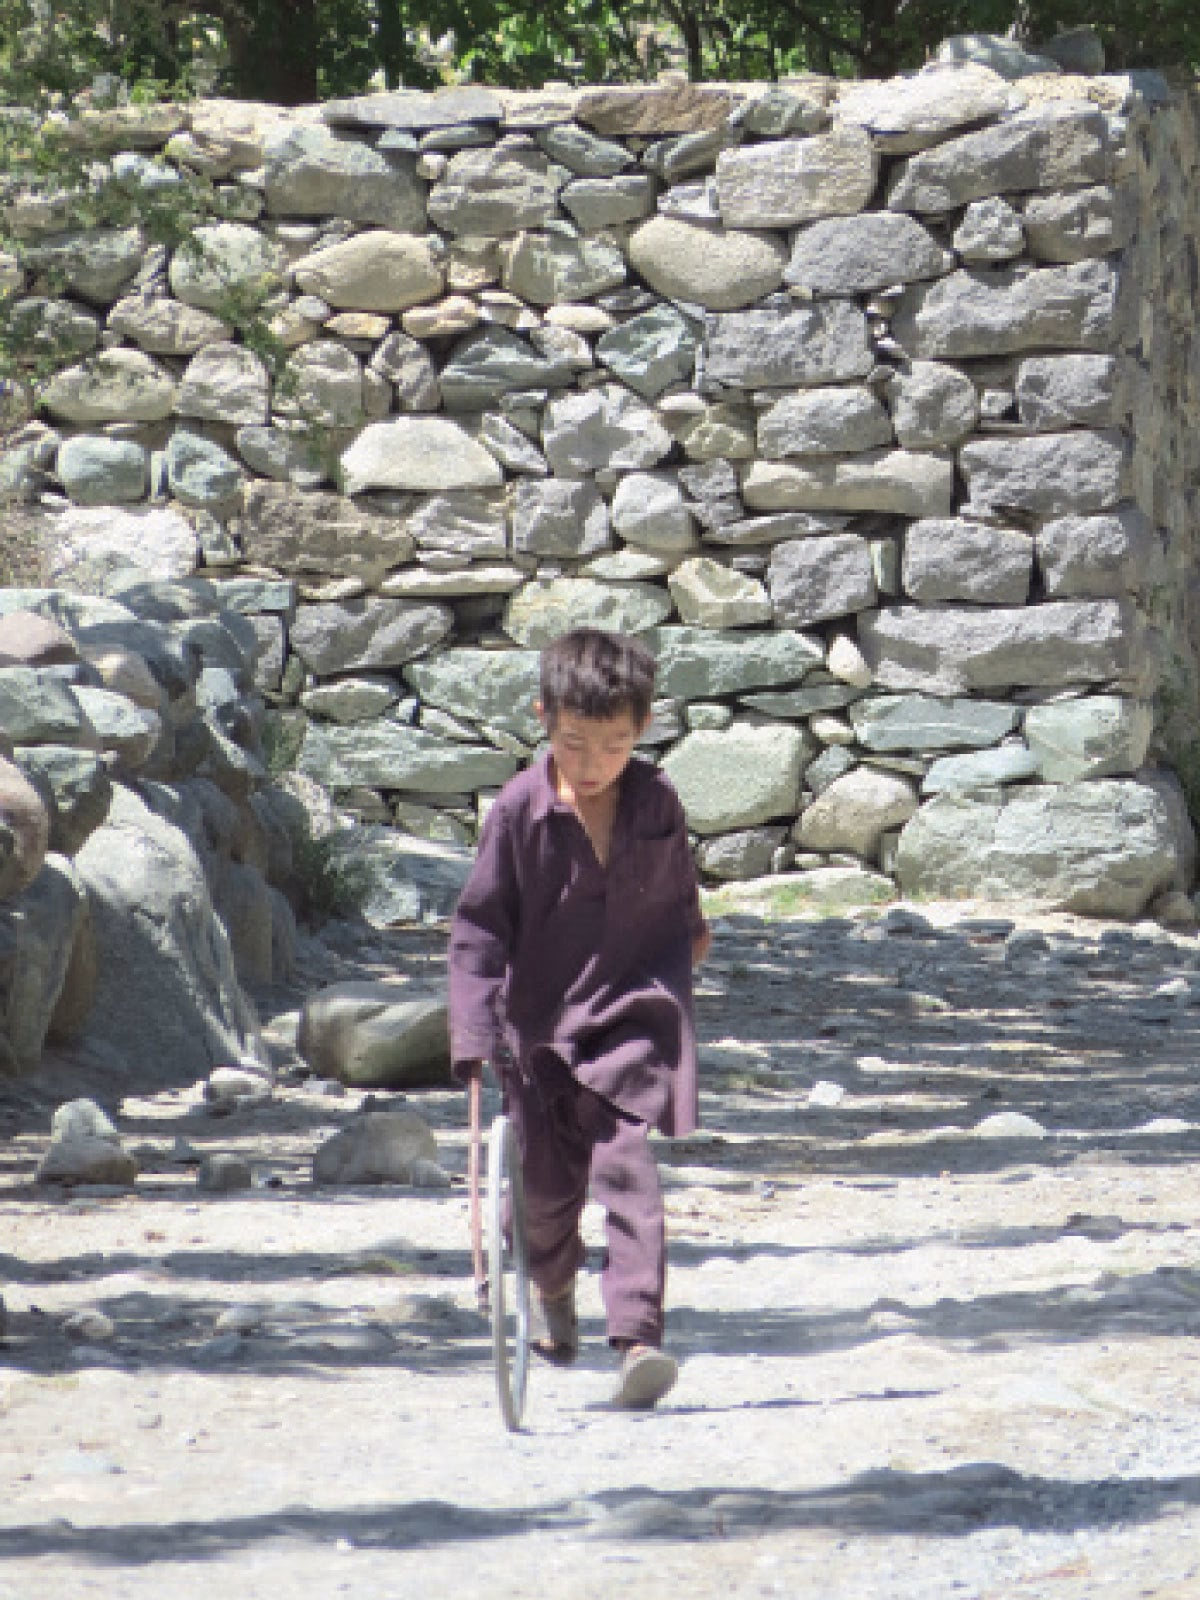 A child keeps himself occupied on the streets of Hatoon in Ghizer | Aurangzaib Khan